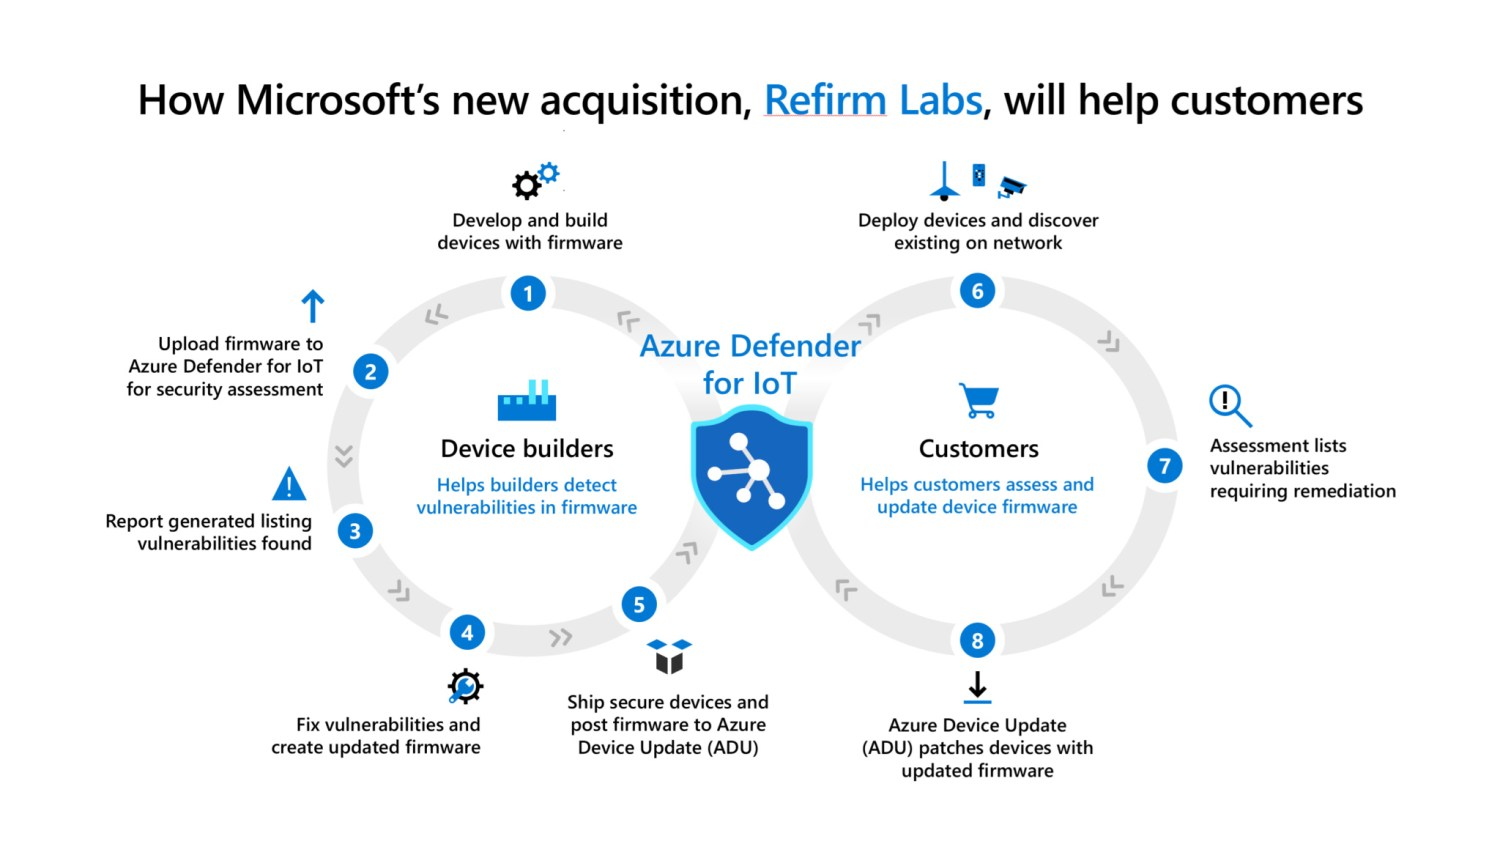 Microsoft will enhance chip-to-cloud protection with ReFirm Labs